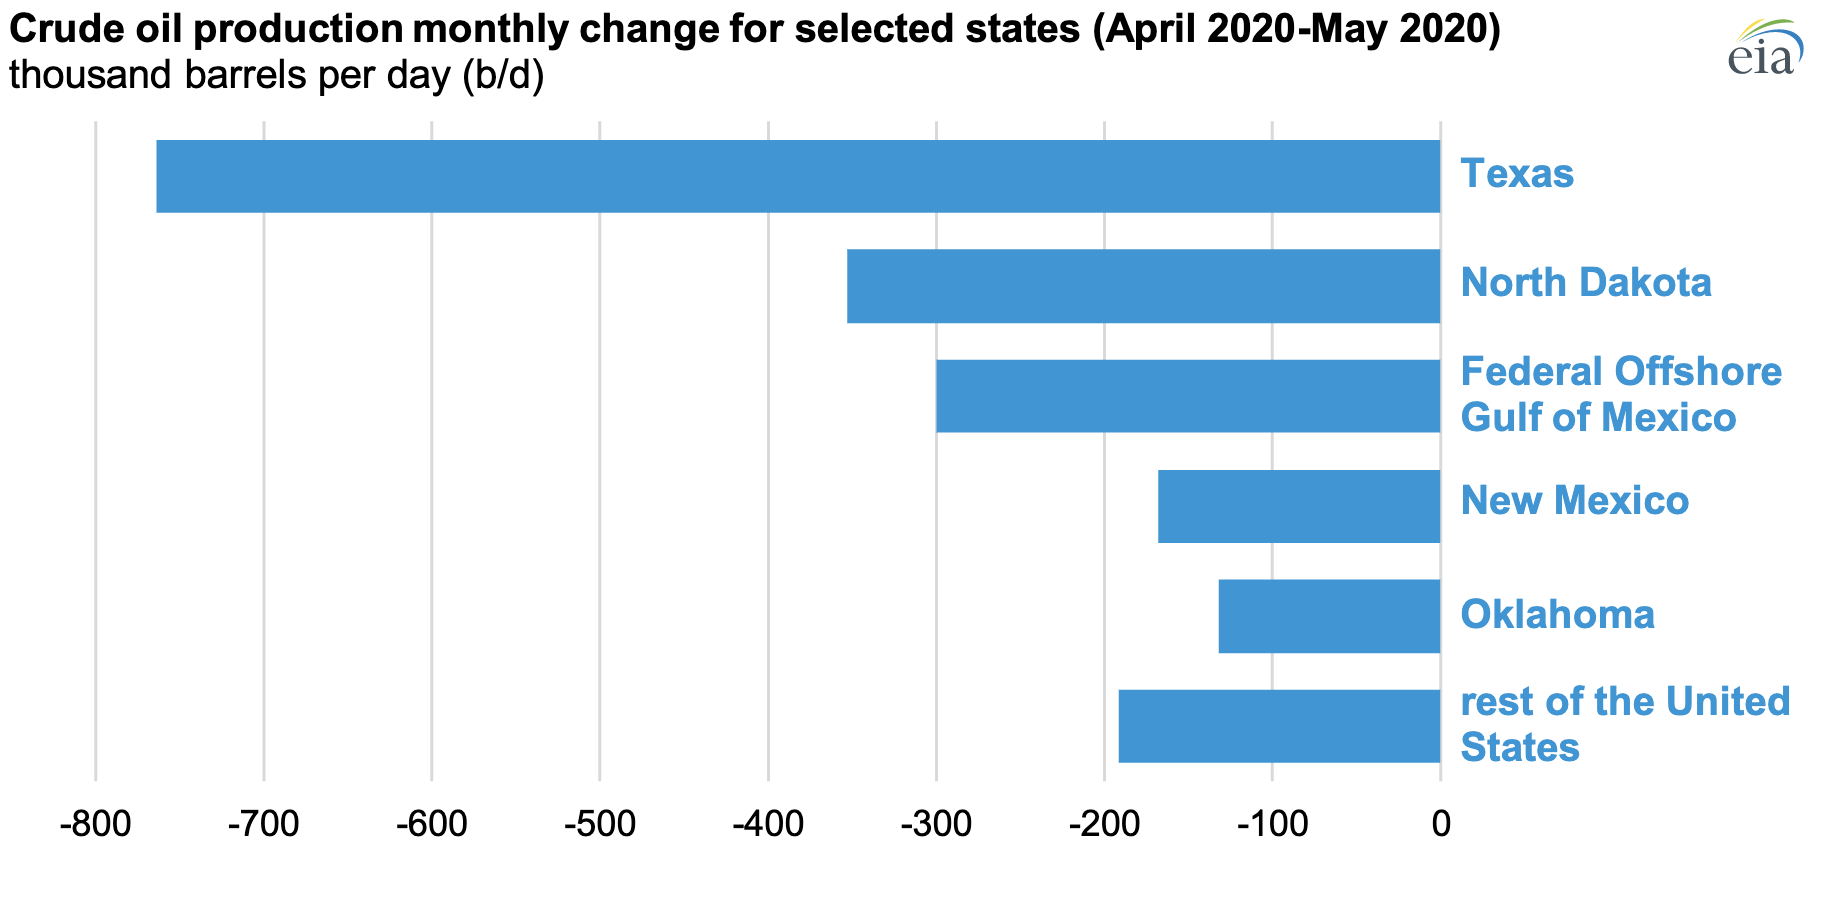 Crude oil production monthly change for selected states (April 2020-May 2020)